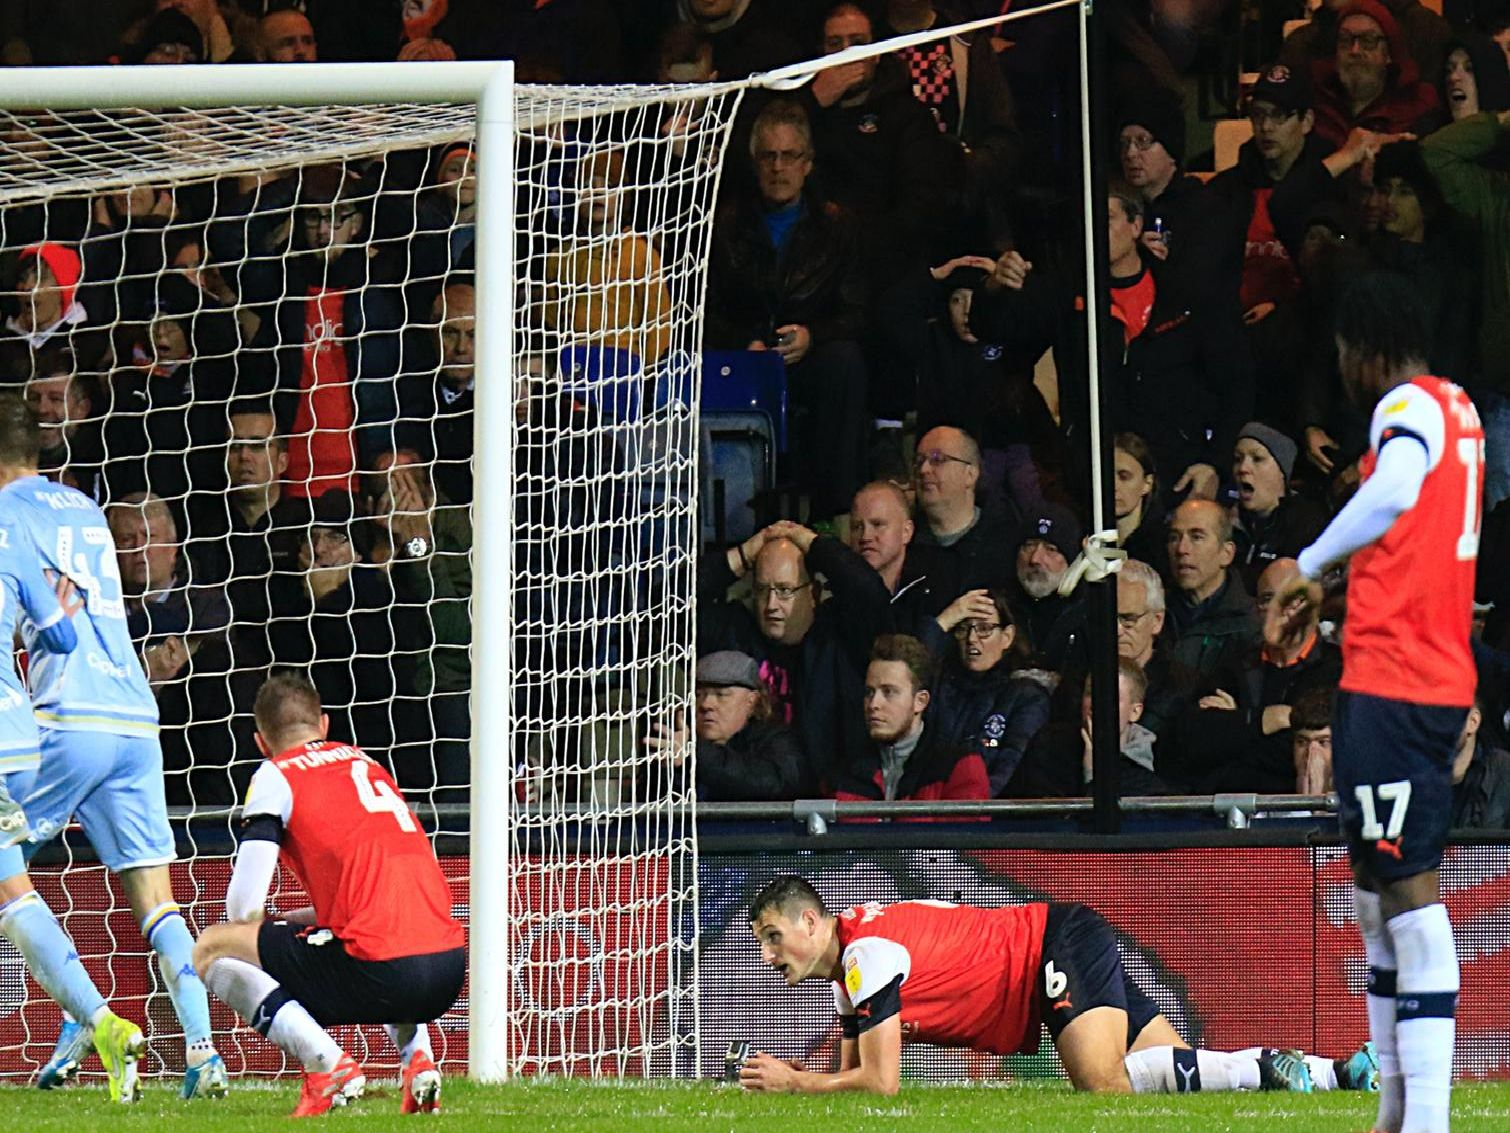 Luton's players drop to their knees after Leeds United score a late winner at Kenilworth Road